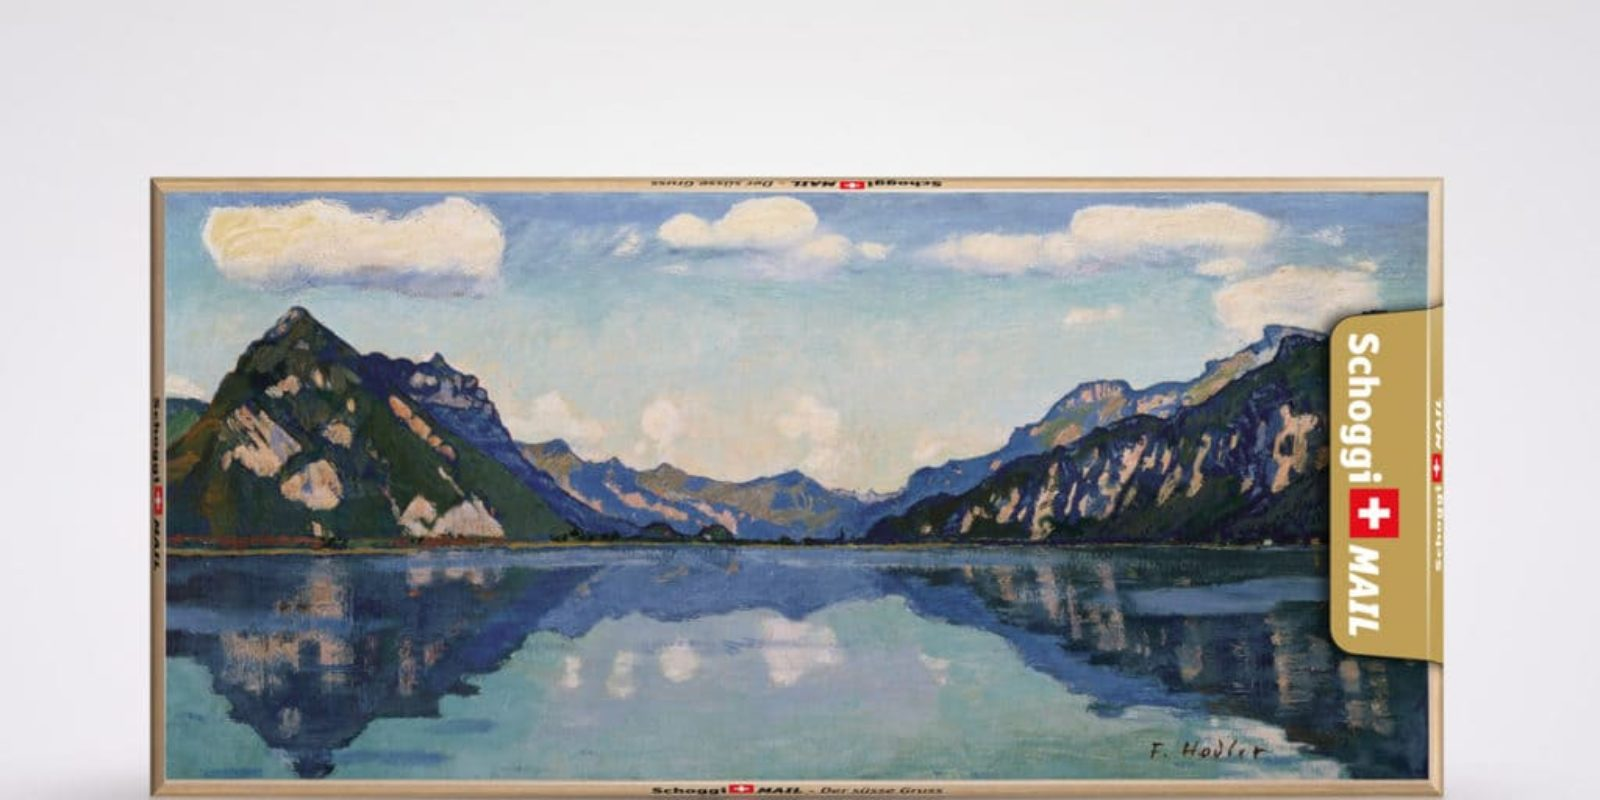 1137841-Hodler-Thunersee_front